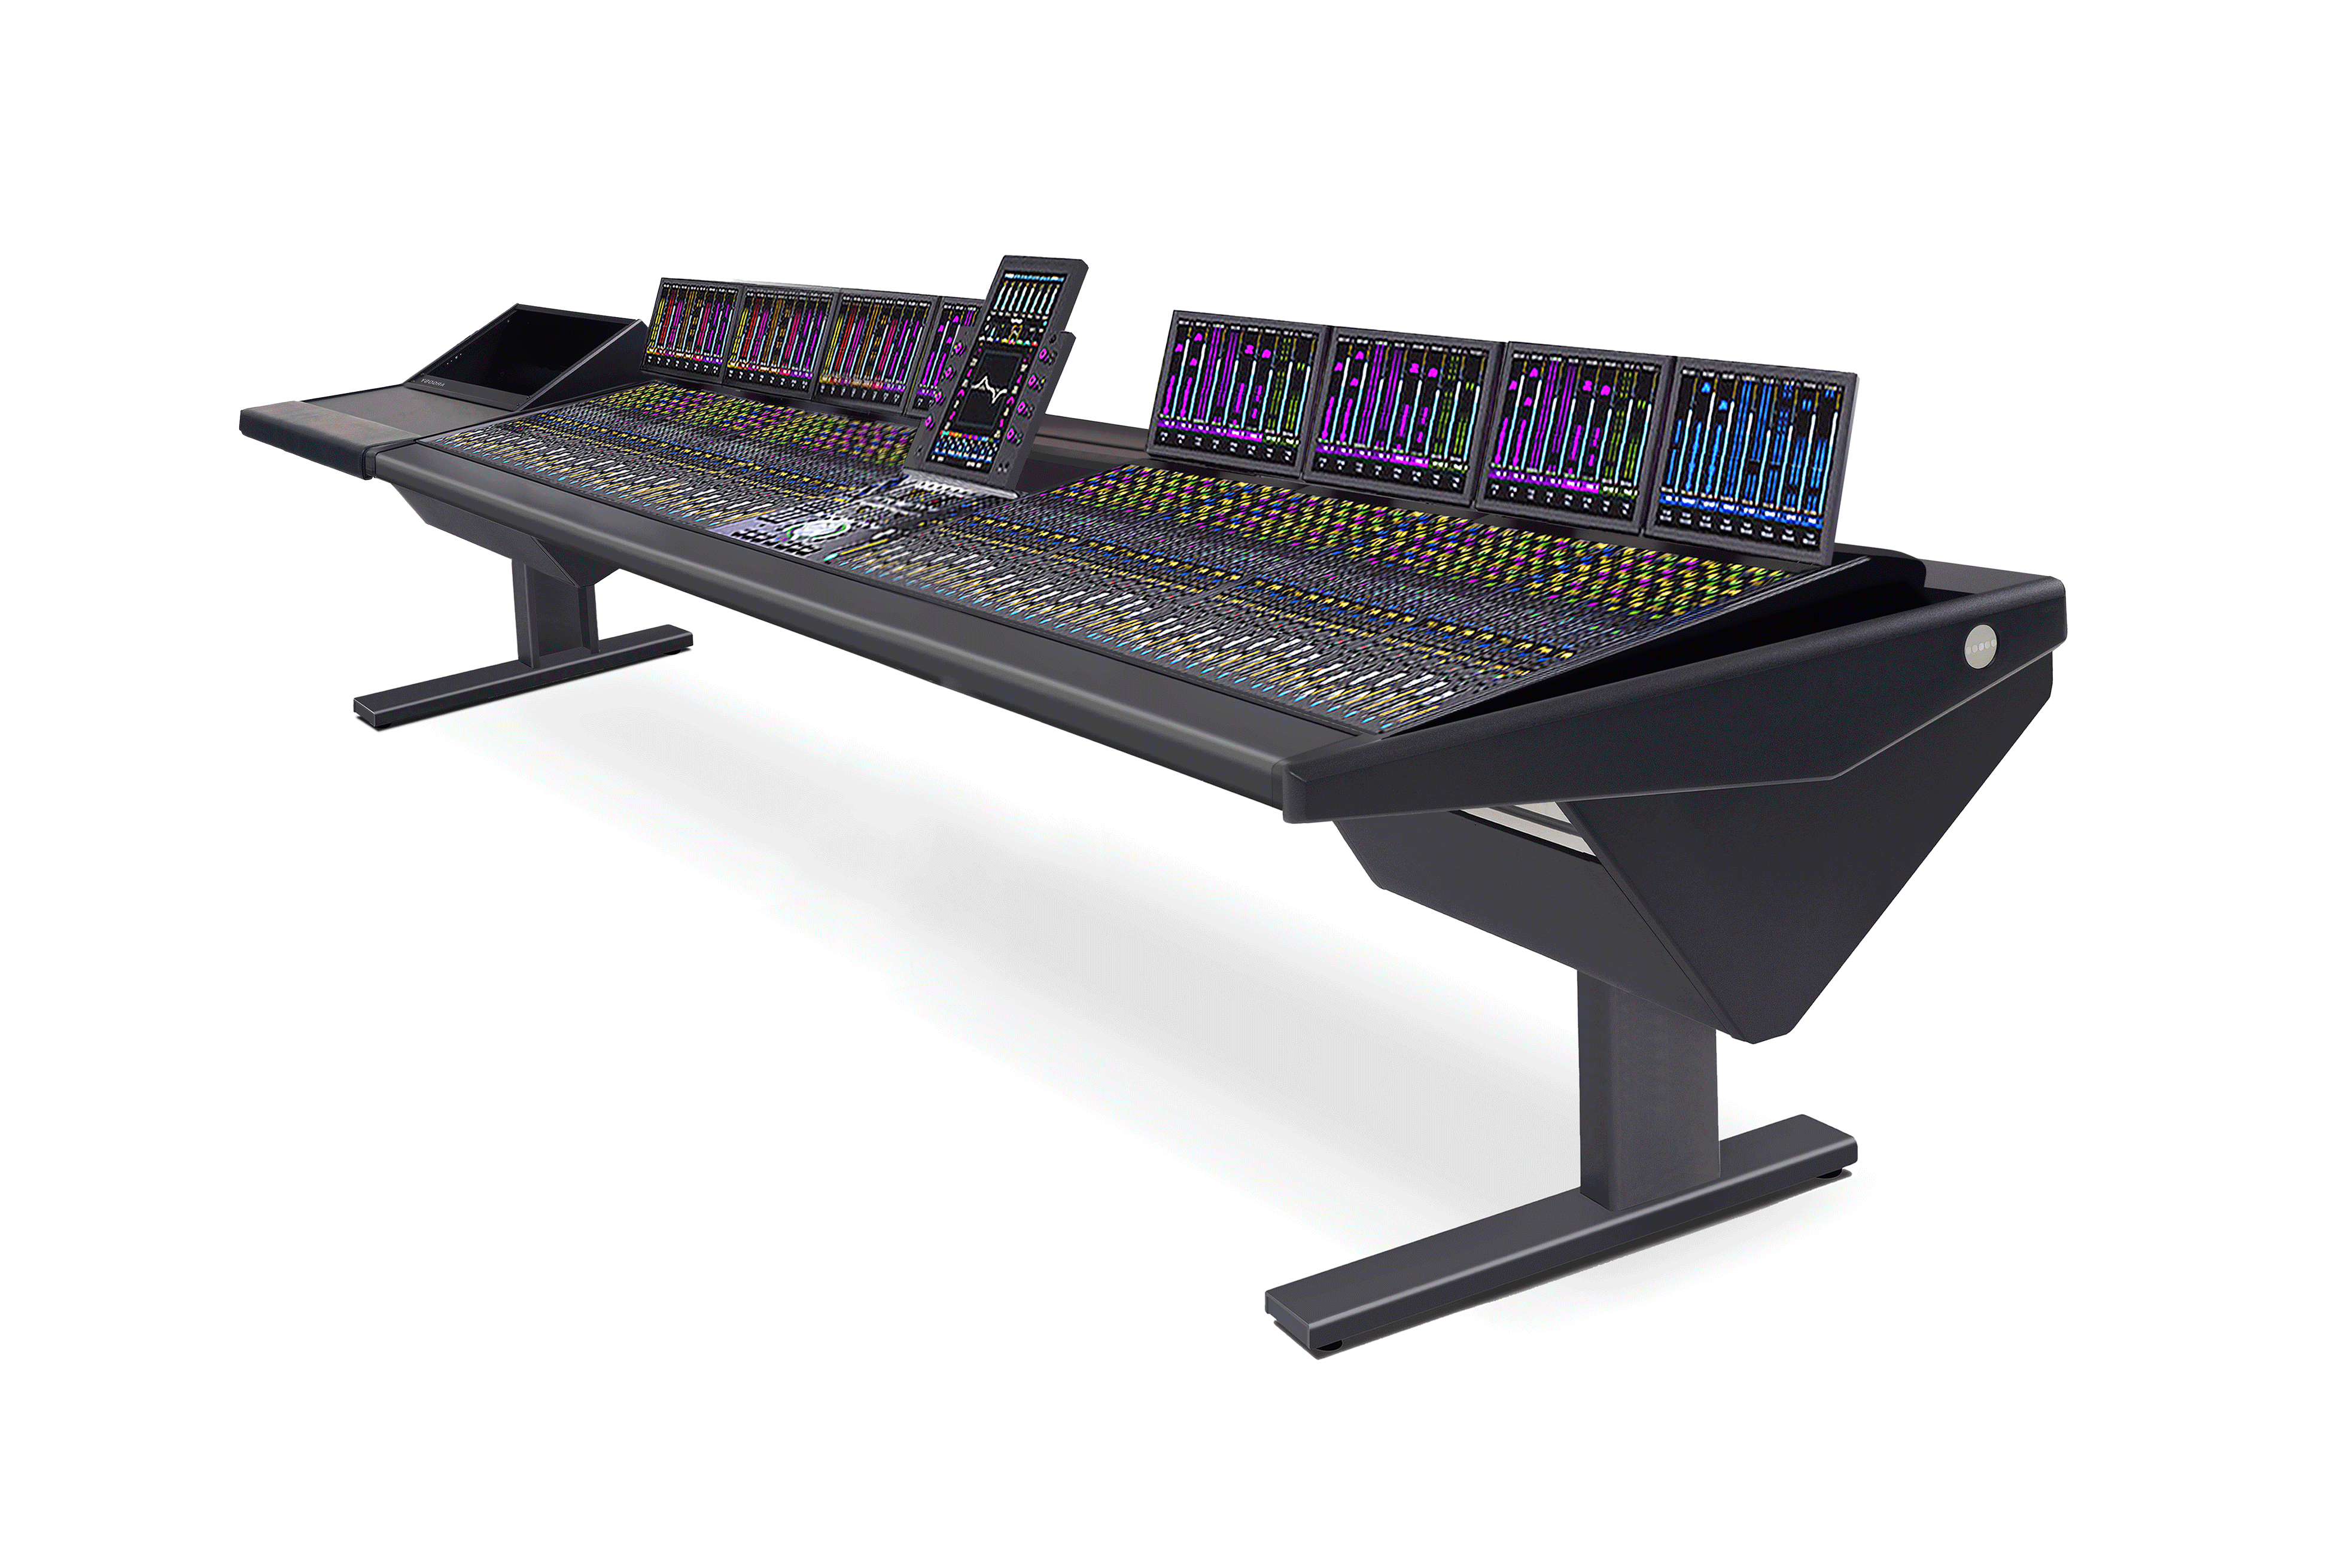 64 Fader System with Rack (L)